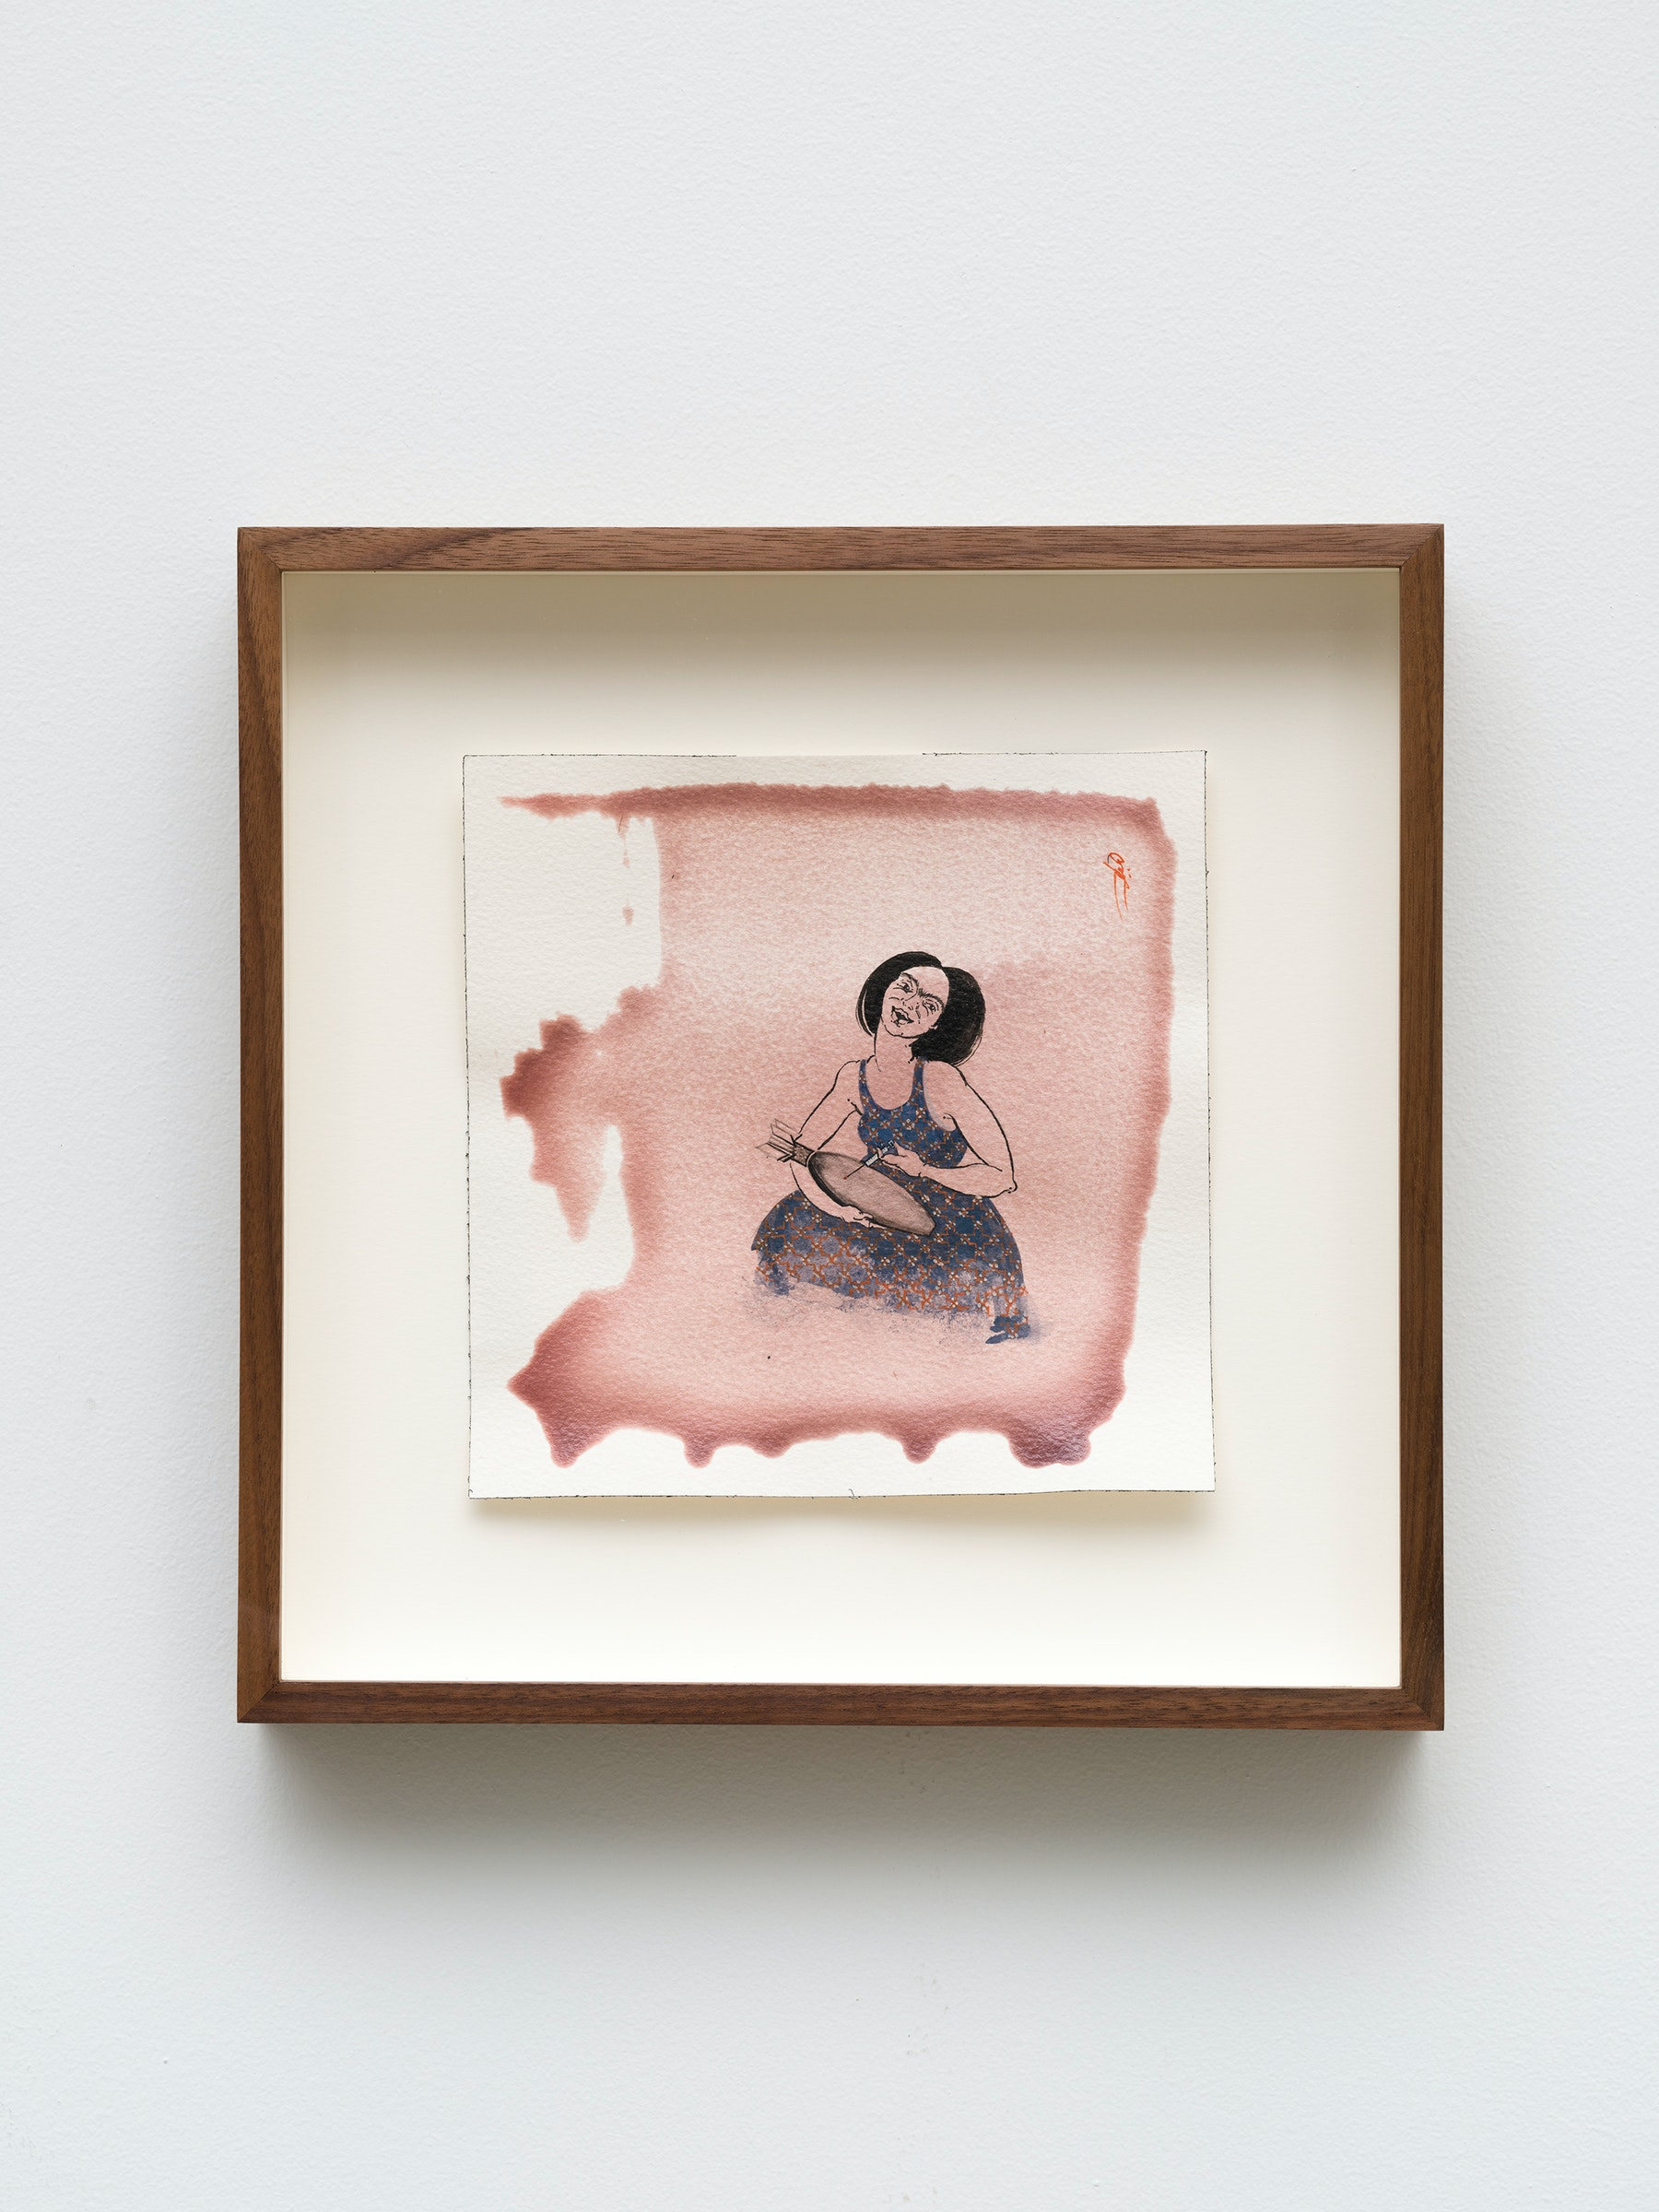 """Hayv Kahraman """"untitled,"""" 2021 Watercolor, gouache and dried pigment on paper 7 ²⁹⁄₃₂"""" x 7 ²⁹⁄₃₂"""" [HxW] (20.06 x 20.06 cm) paper size, 12 ¹⁄₂"""" x 12 ¹⁄₂"""" x 2"""" [HxWxD] (31.75 x 31.75 x 5.08 cm) framed Inventory #KAR193 Courtesy of the artist and Vielmetter Los Angeles Photo credit: Jeff Mclane"""